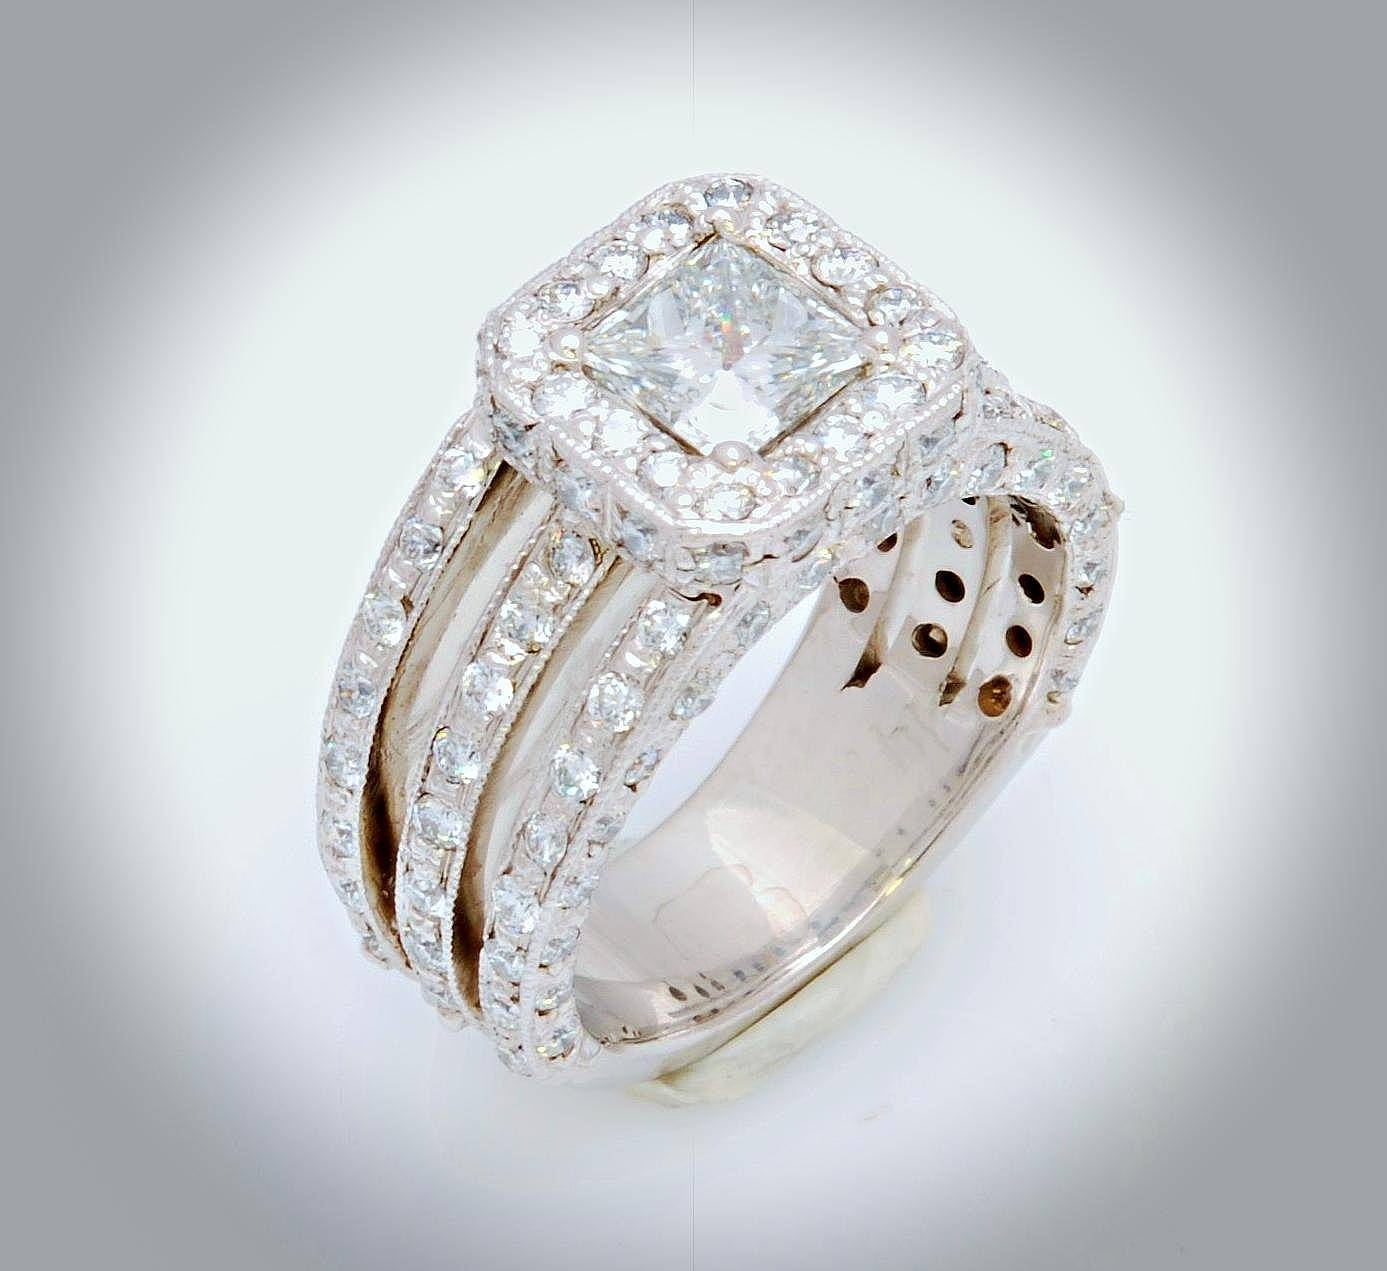 William's Custom Jewelers: Custom Jewelry In Salt Lake City, Utah Throughout Custom Wedding Rings Sets (View 15 of 15)